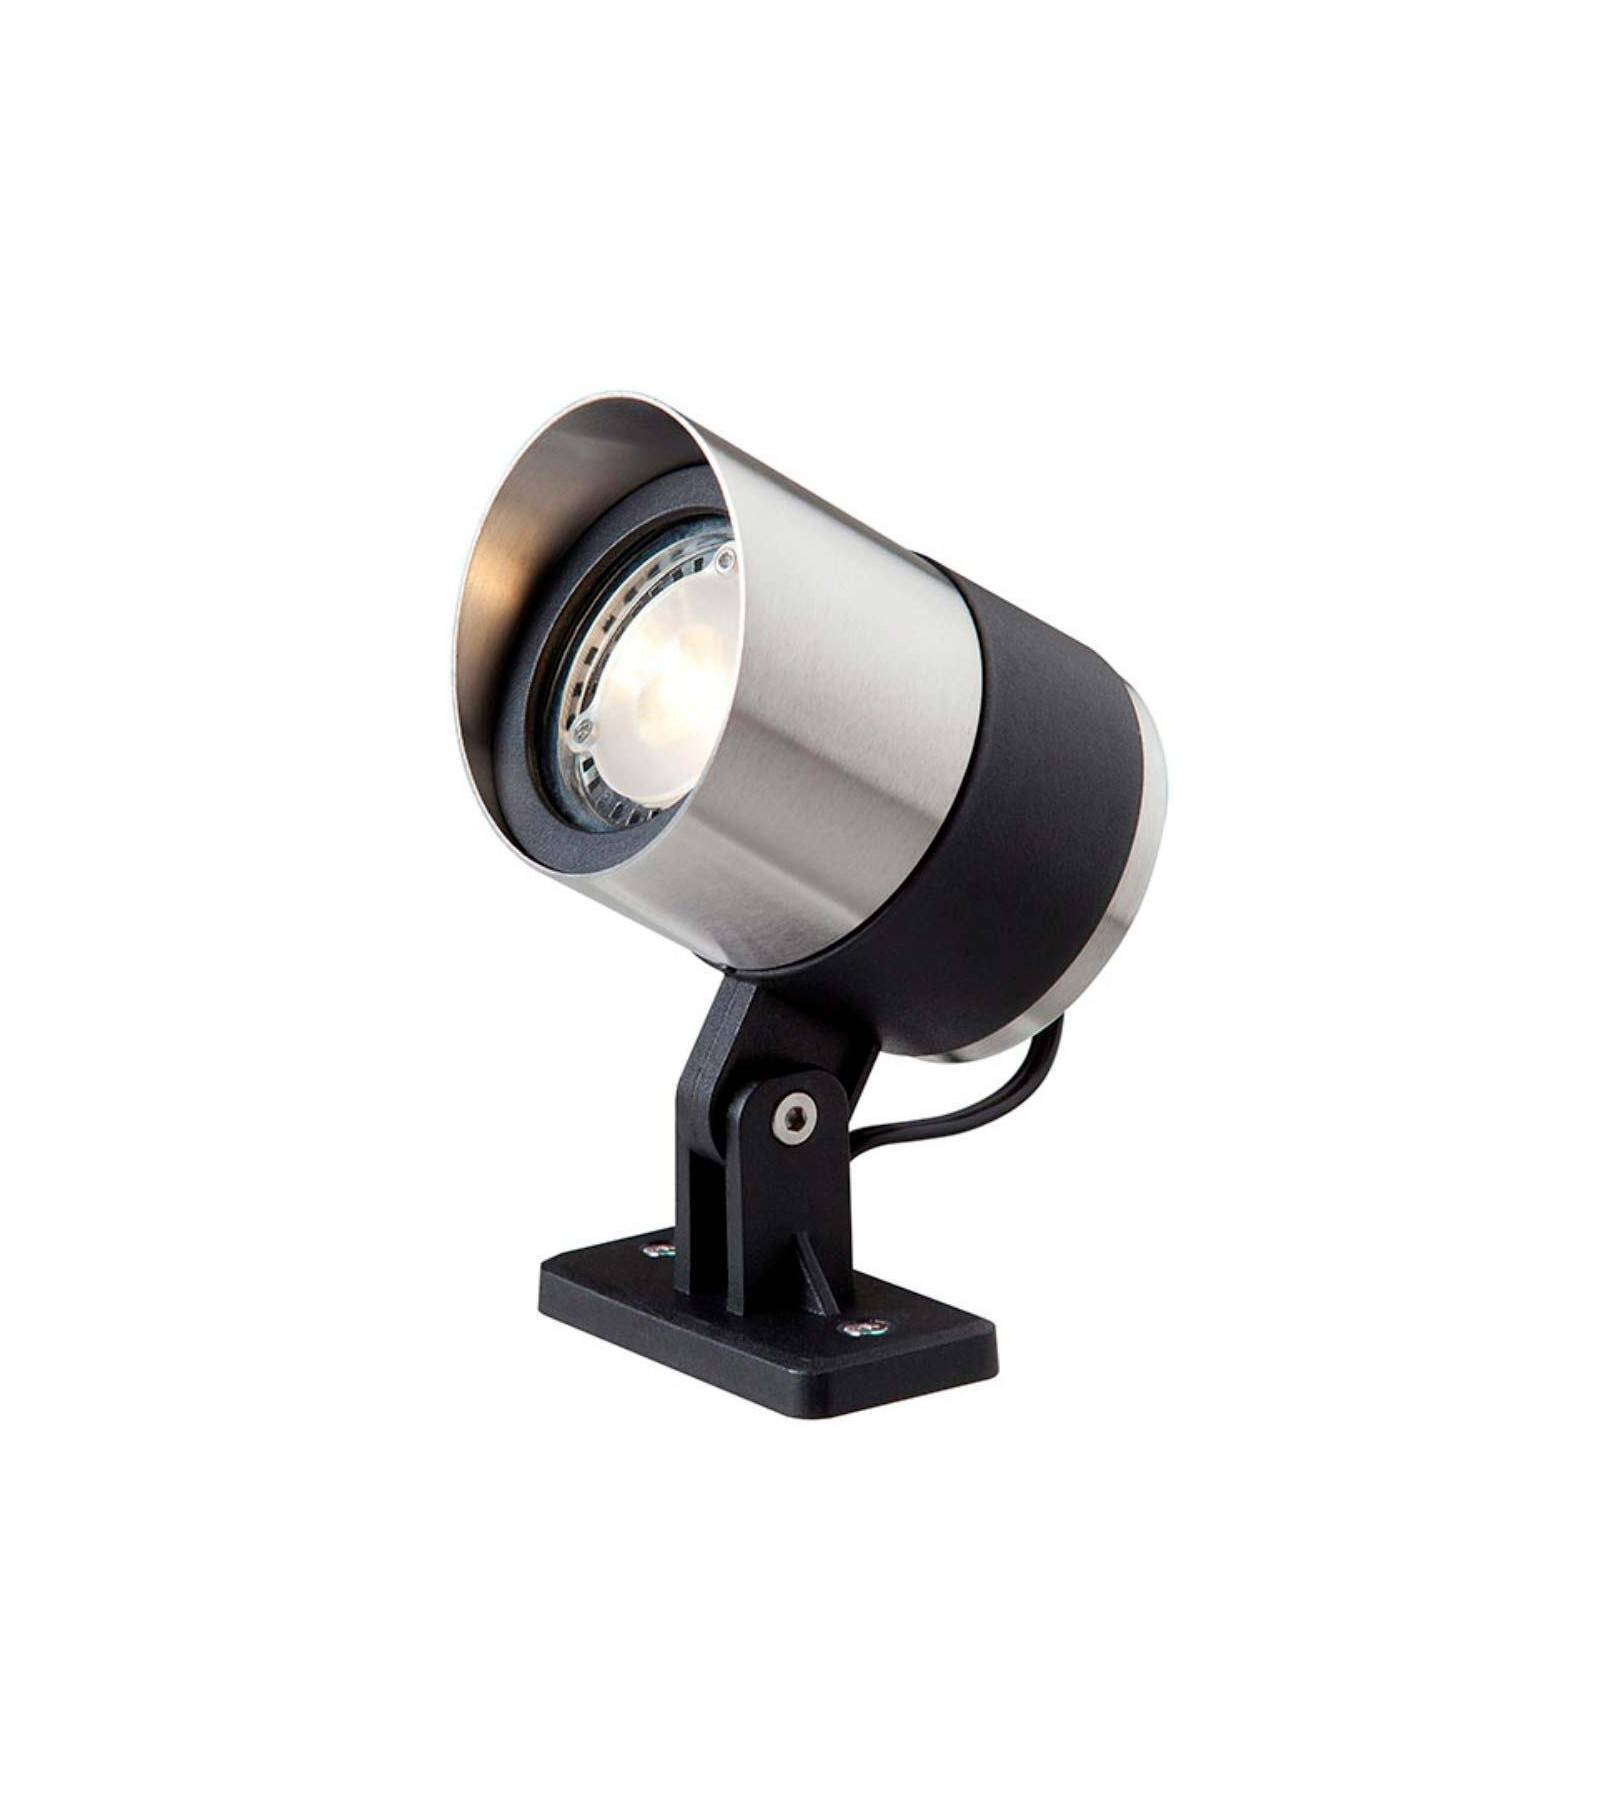 Garden Lights Spot projecteur à piquer ou visser ATLAS 3W GU5.3 MR16 IP44 Blanc Chaud Orientable éxterieur Garden lights ampoule fournie